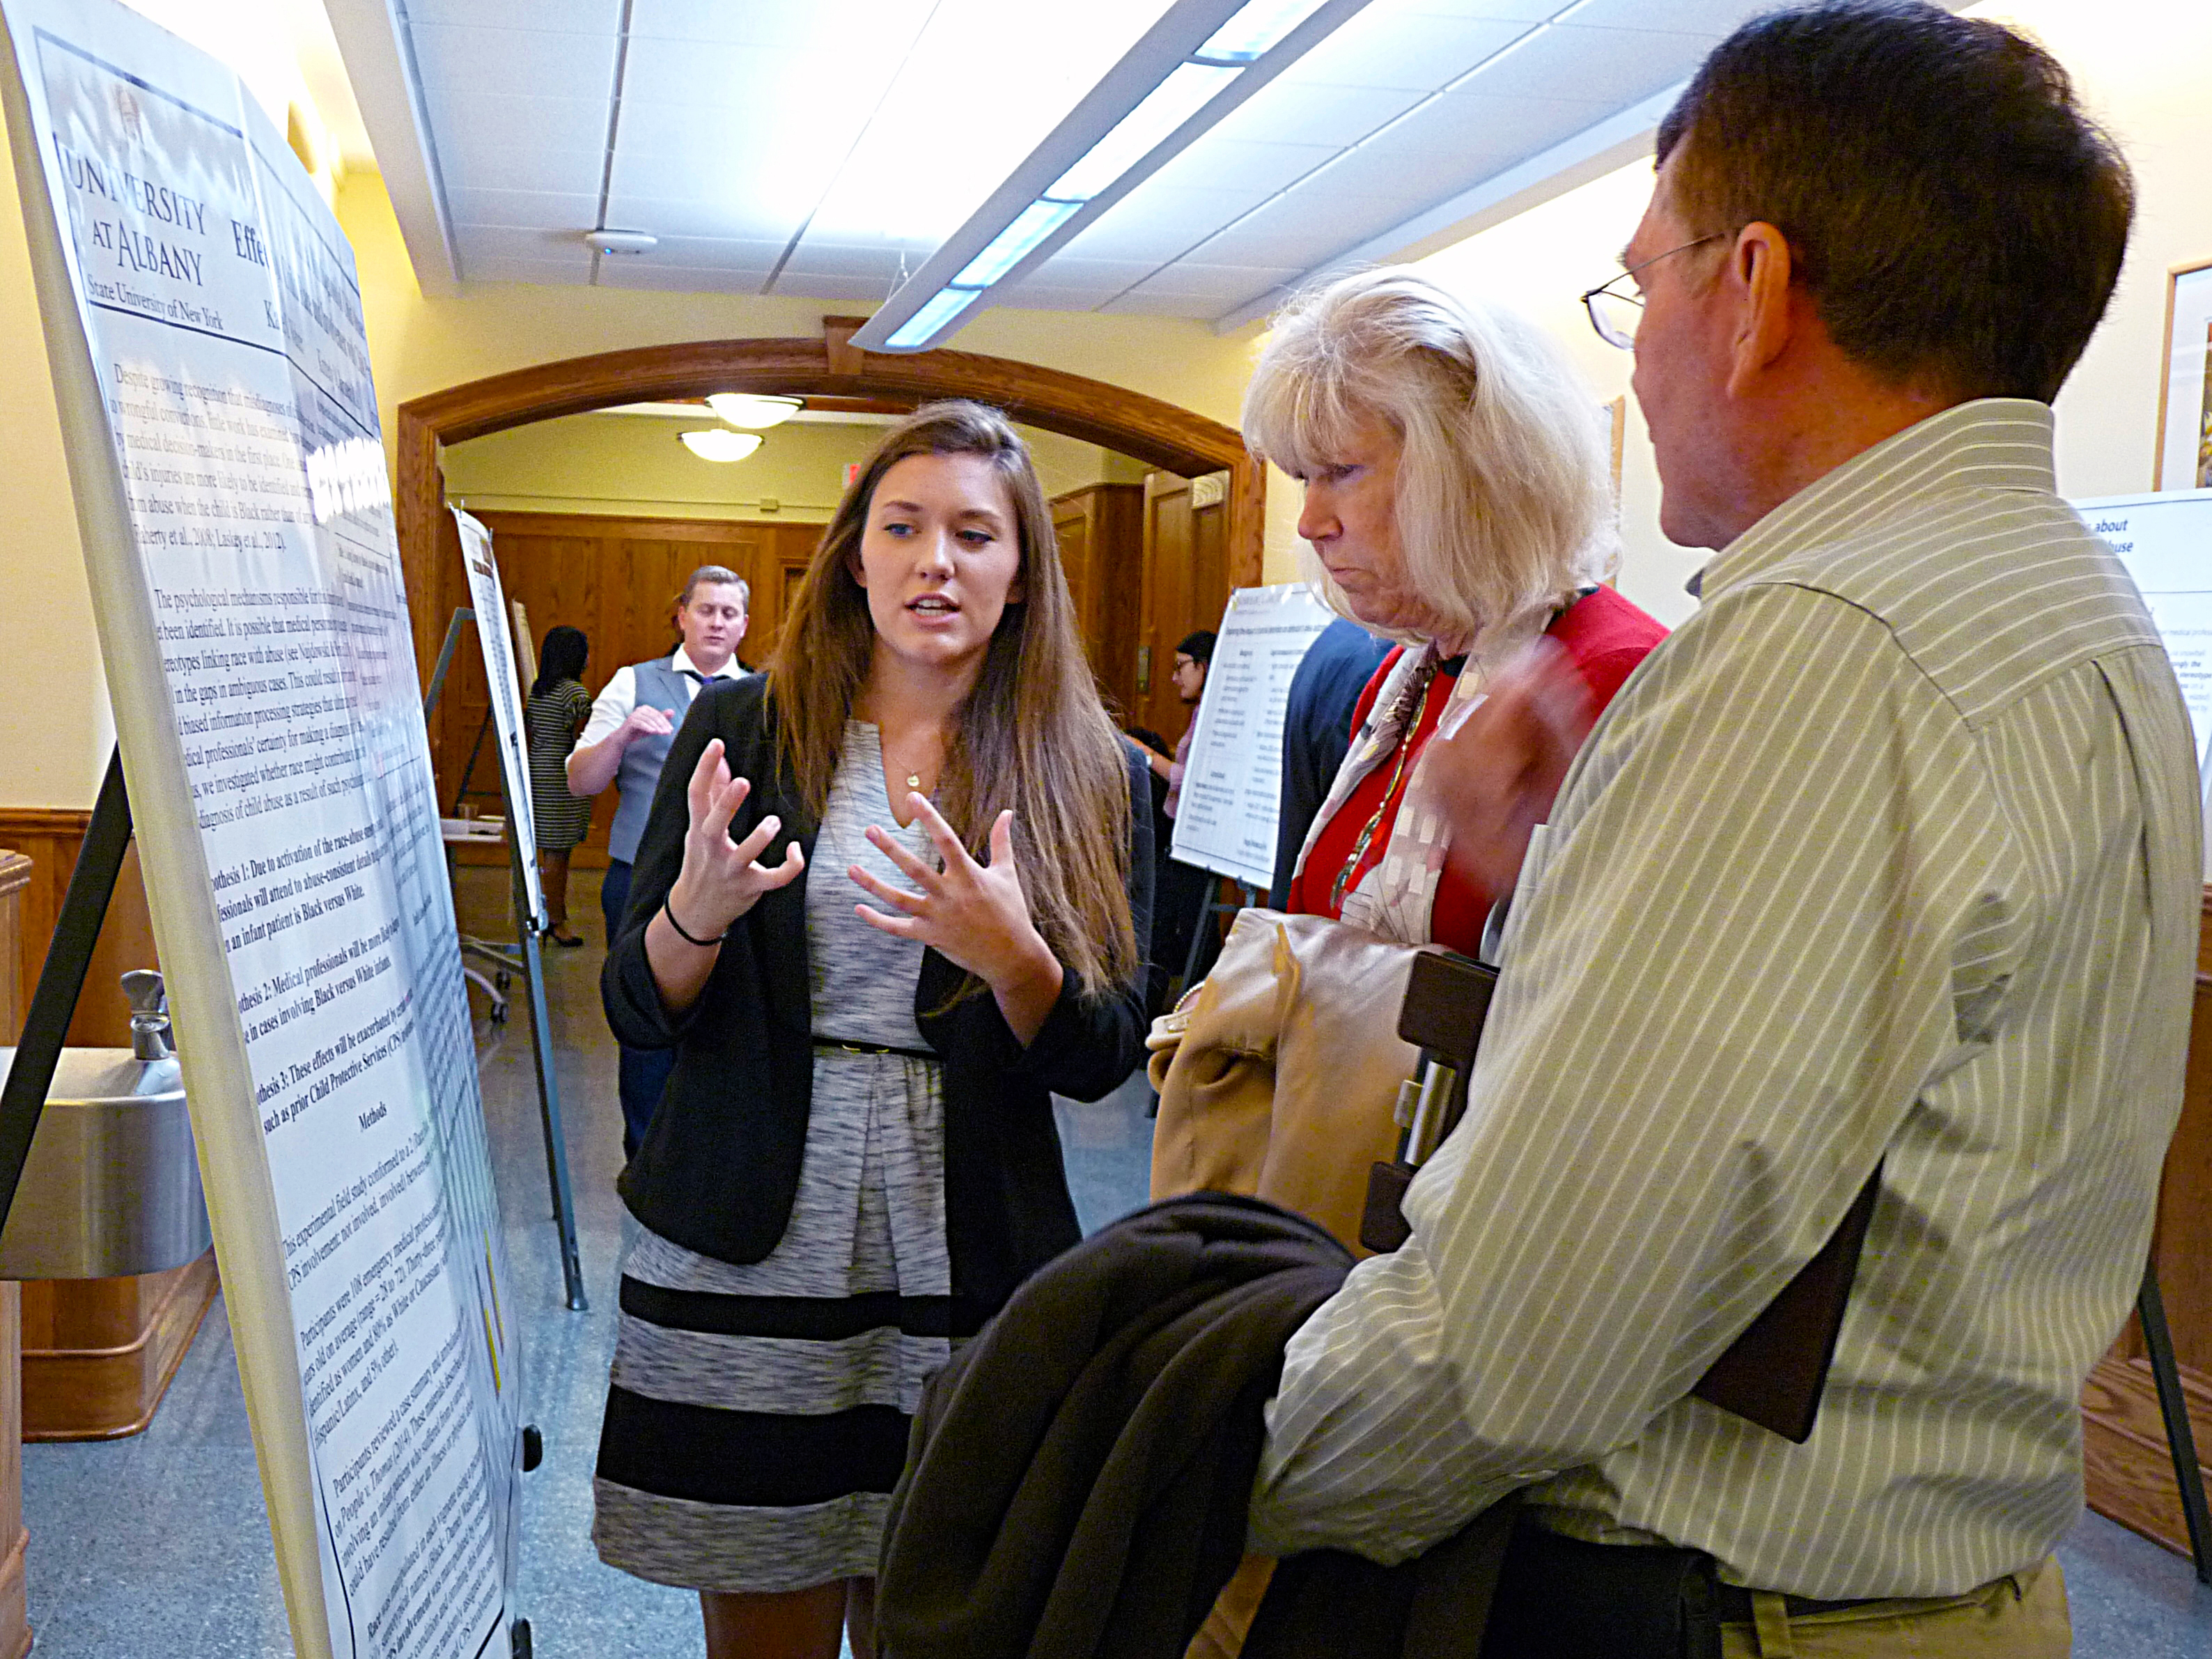 A criminal justice student explains her research during a poster session